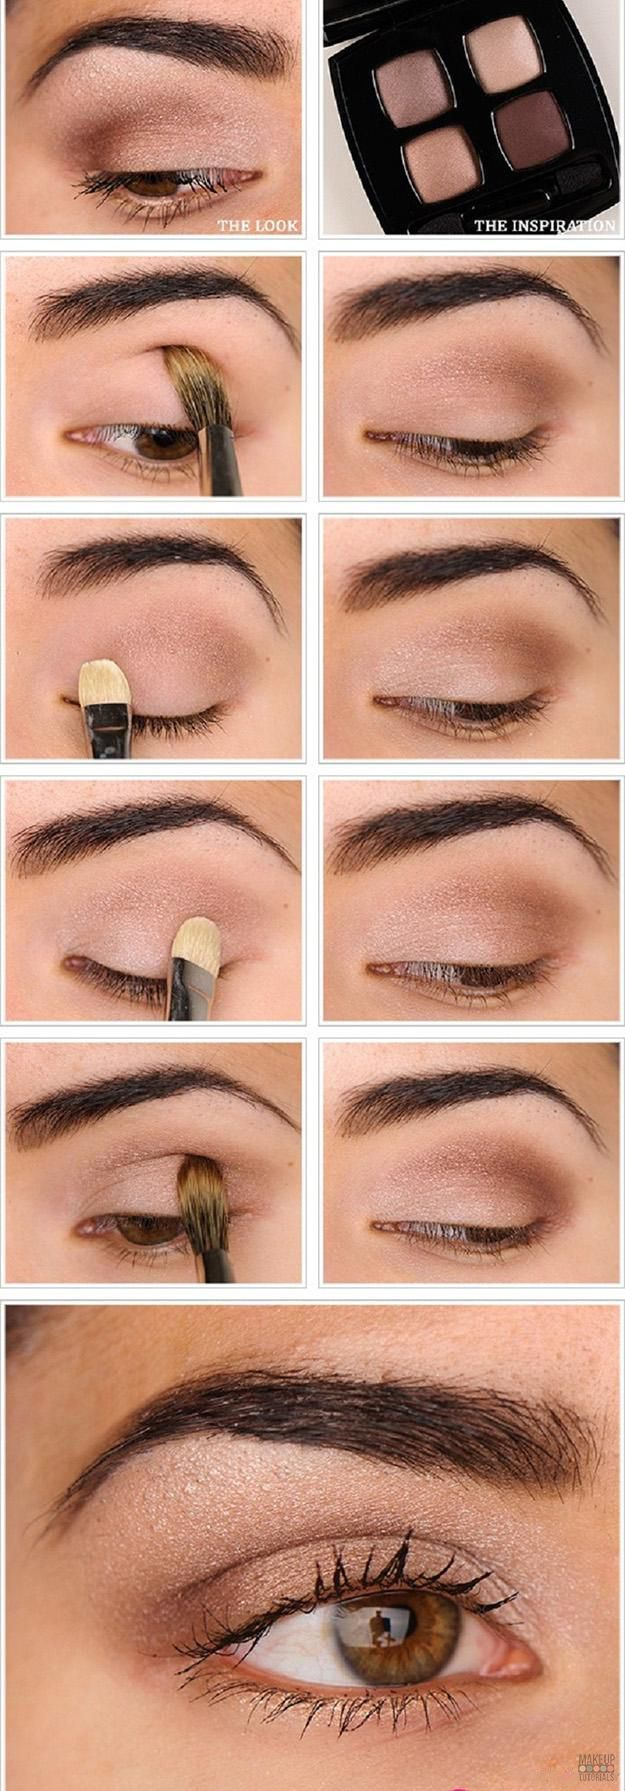 Everyday Natural Makeup Tutorials - Makeup Tutorials